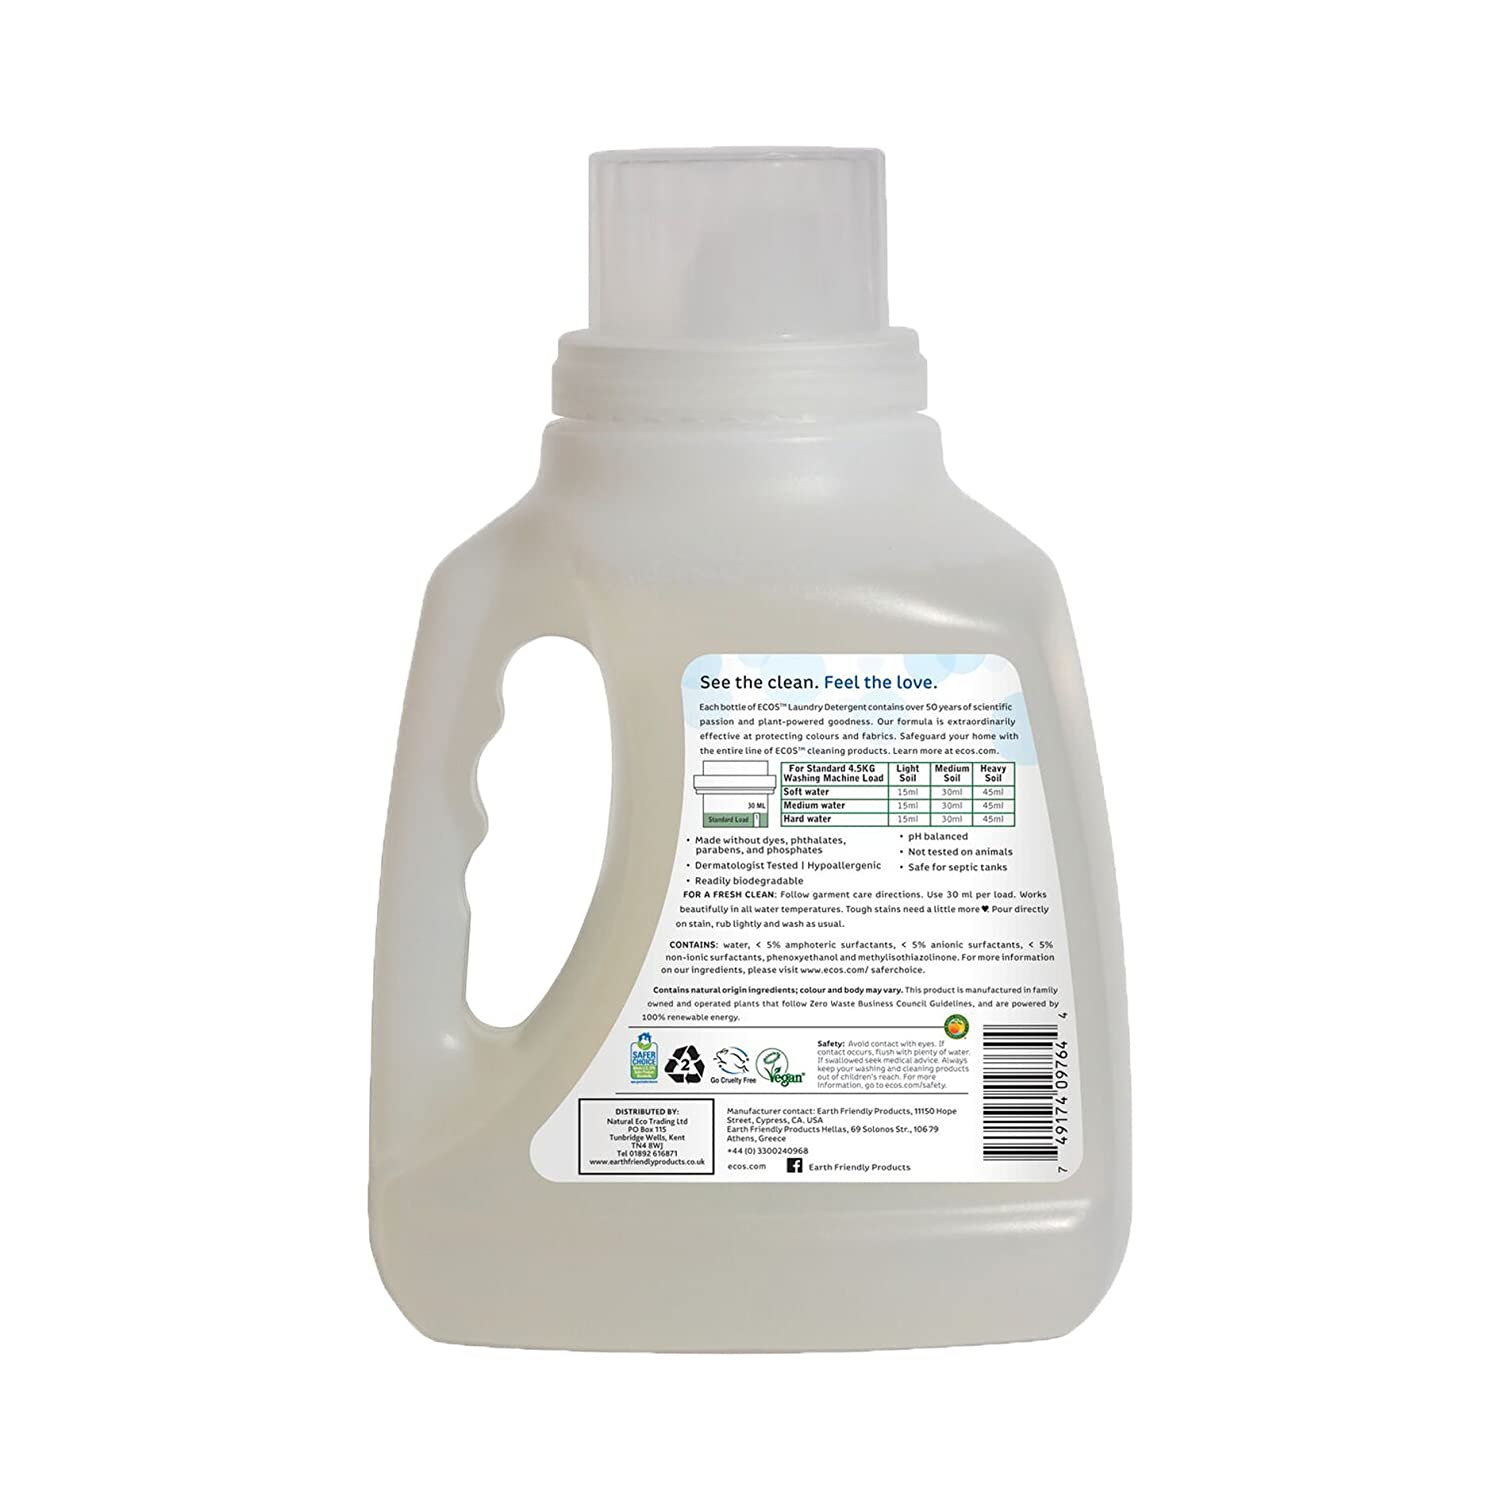 ecos free and clear laundry detergent reviews